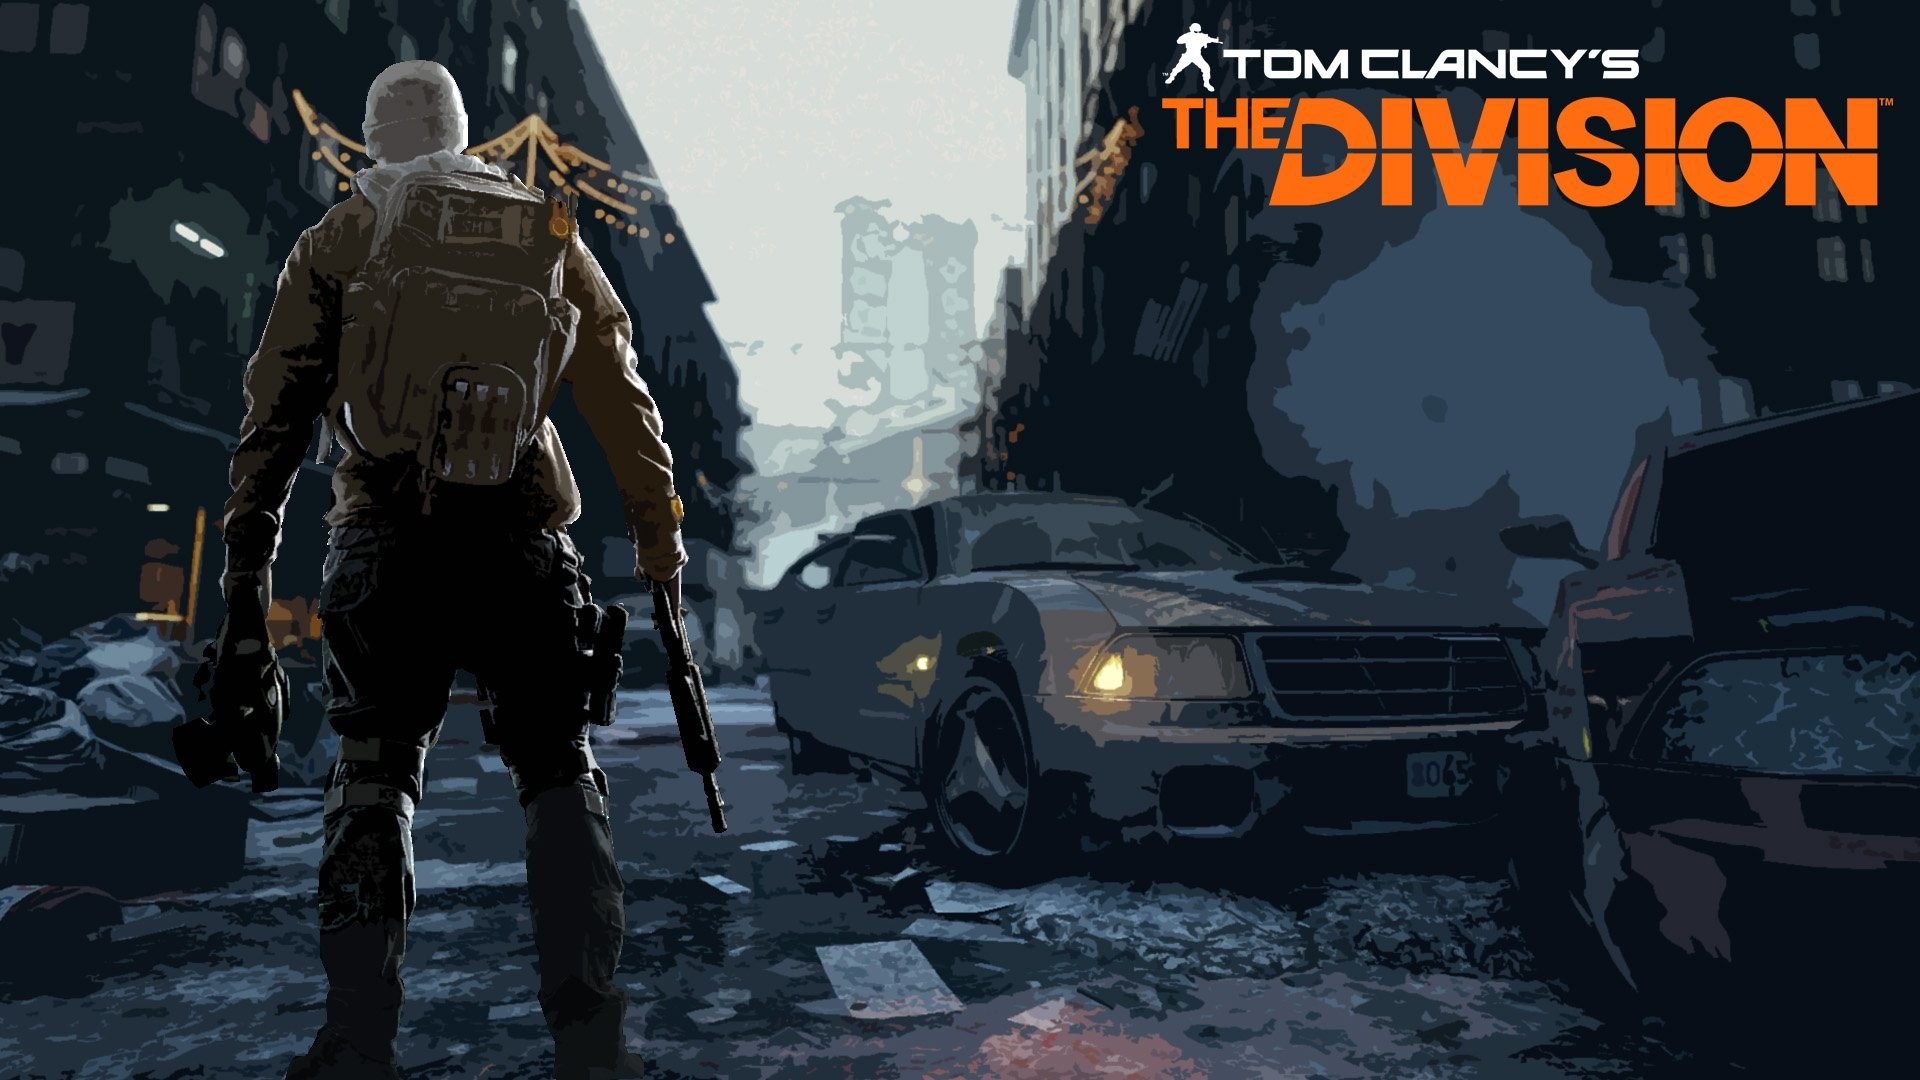 Download Tom Clancys The Division Wallpaper Awesome Images #180qp8d246  px 235.57 KB Games Tom